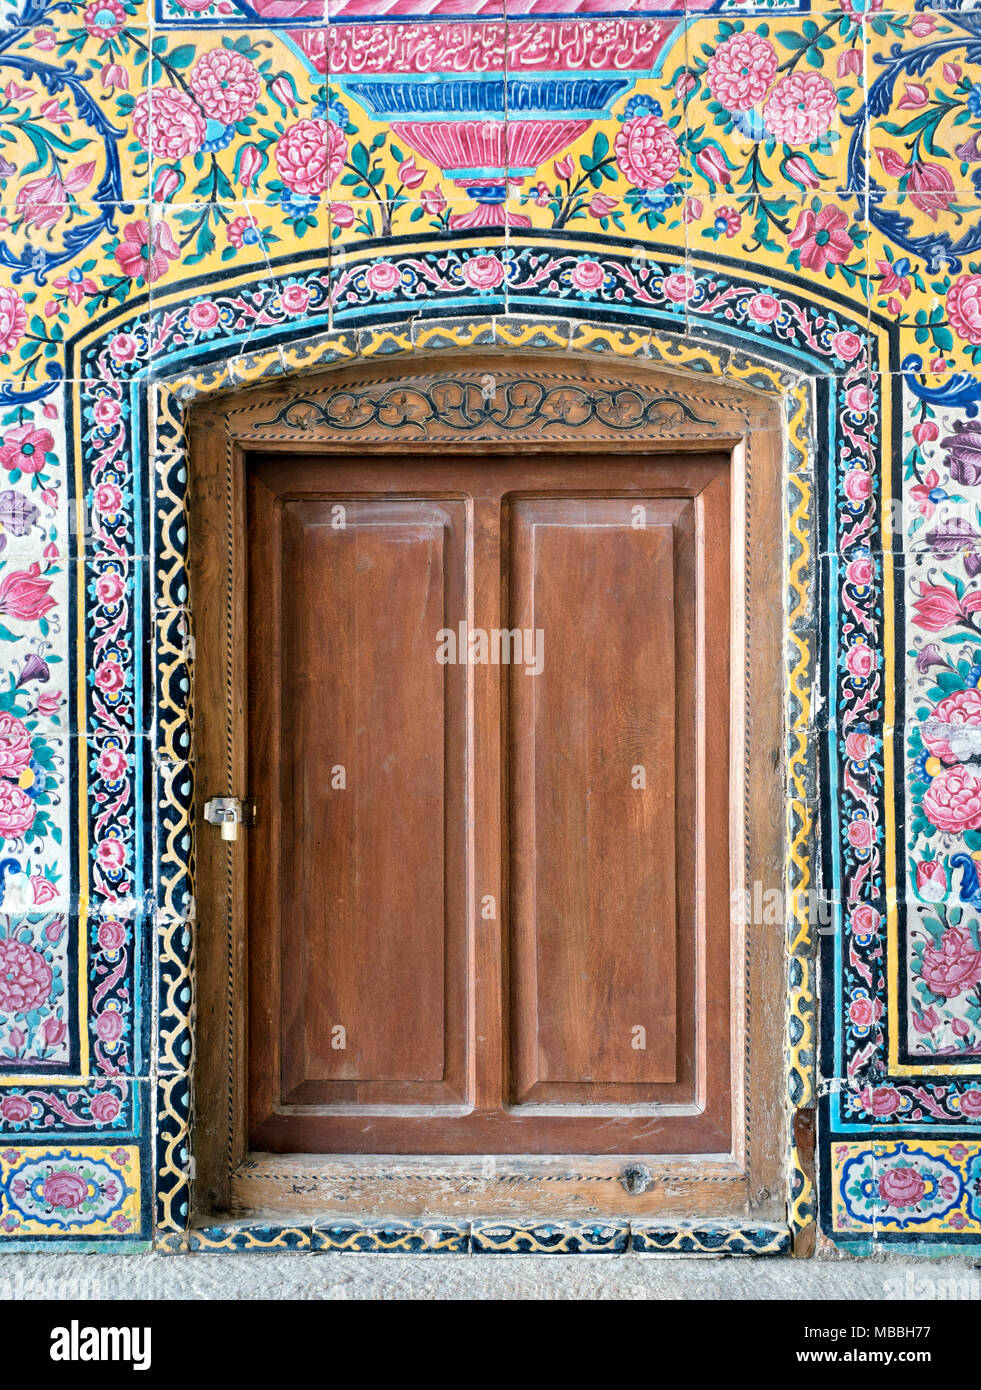 Superb Wooden Door At Nasir Ol Molk Mosque, Shiraz, Iran   Stock Image